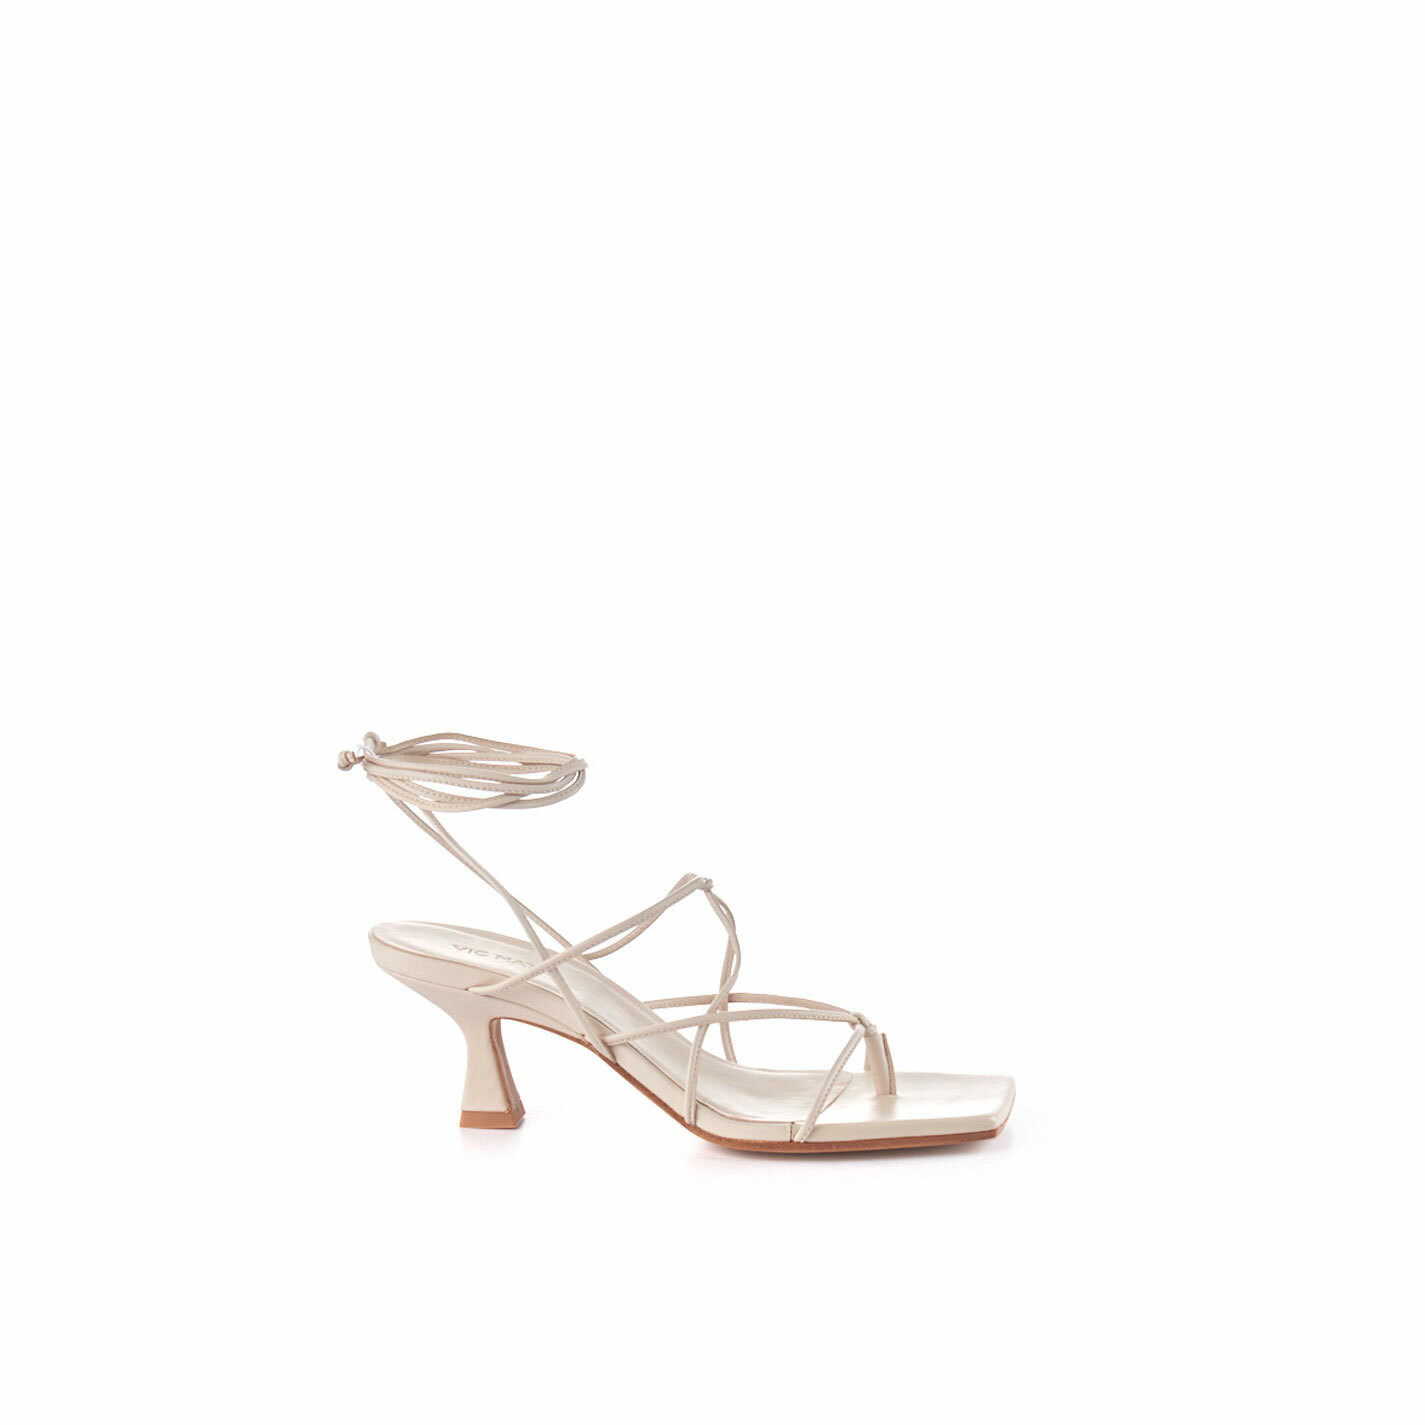 Ivory-coloured sandals with leather strings